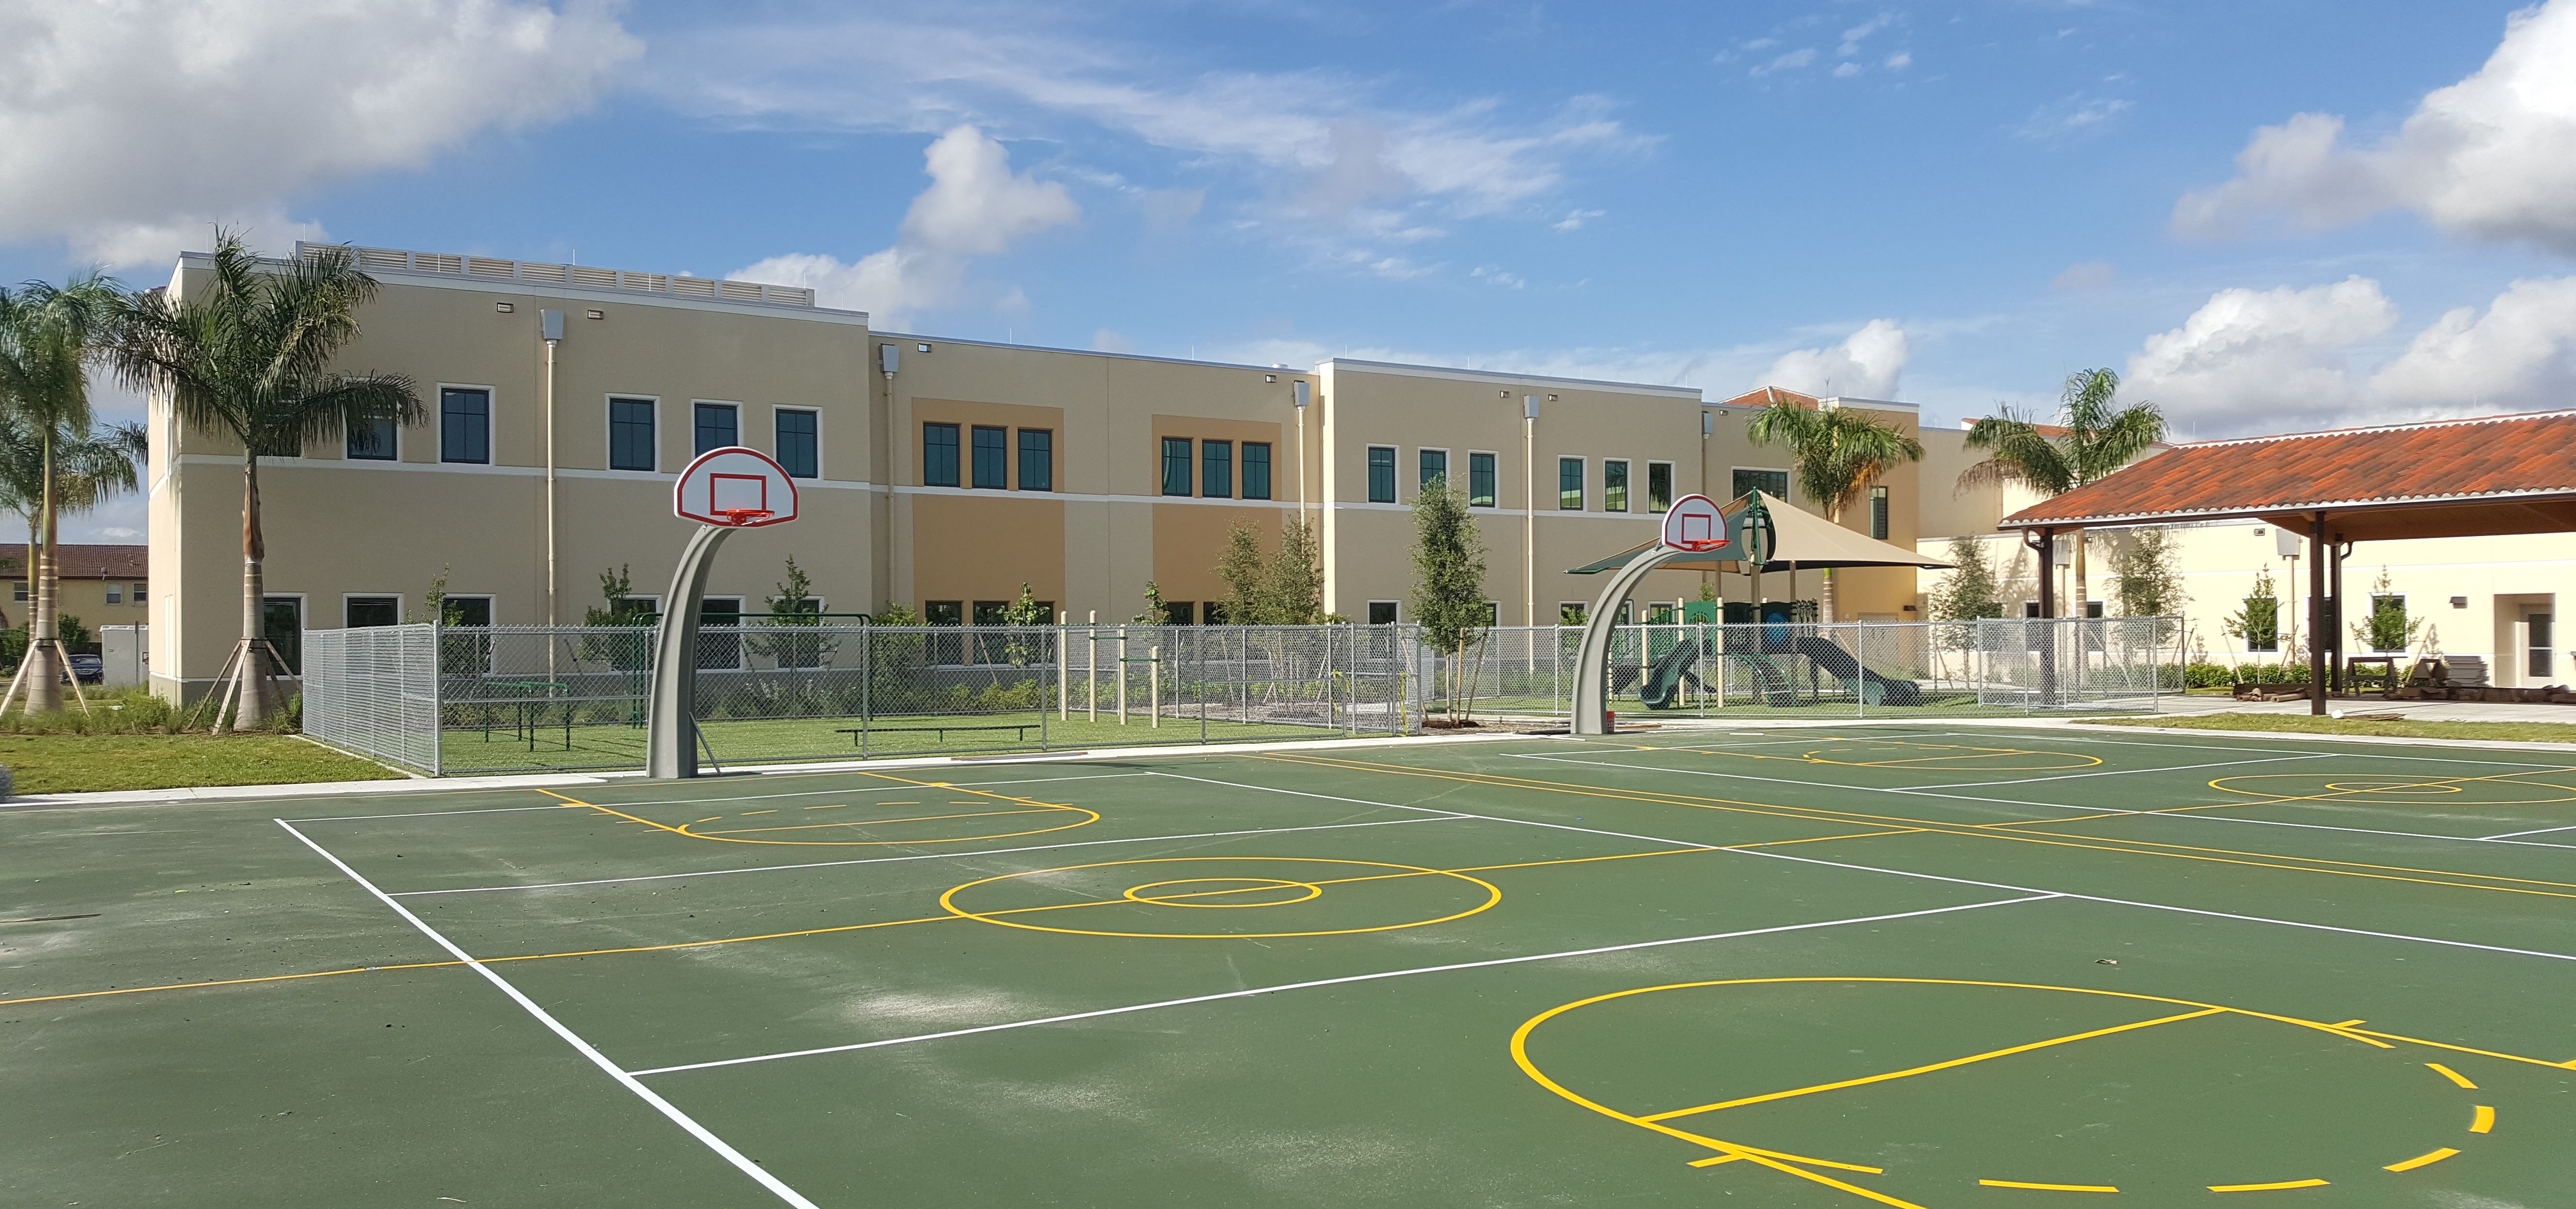 Dr. Toni Bilbao K-8 Center